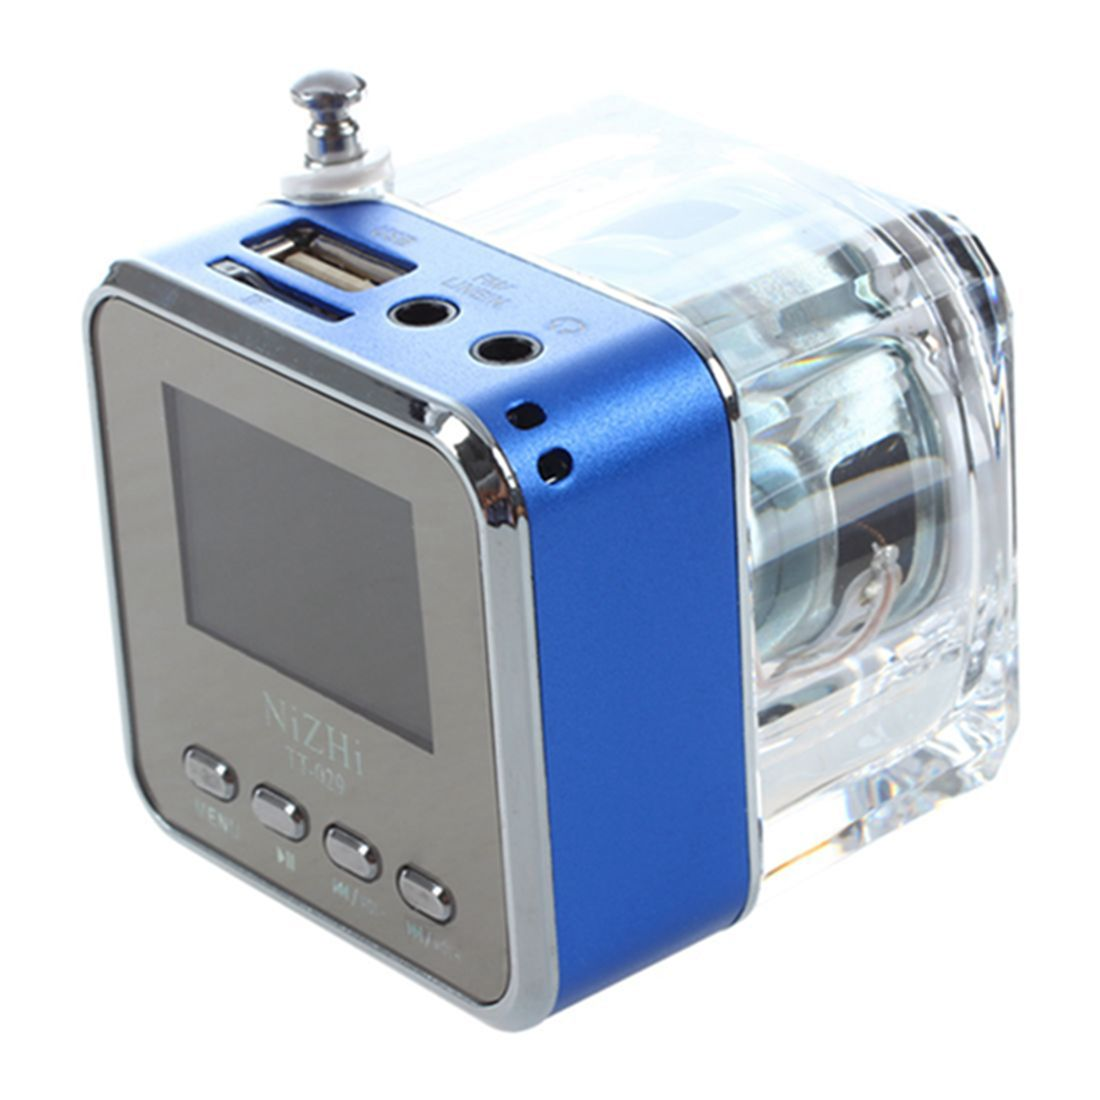 NIZHI Mini Speaker LED SD / TF MP3 player speaker FM USB Sound Station Music Box Colours: Blue